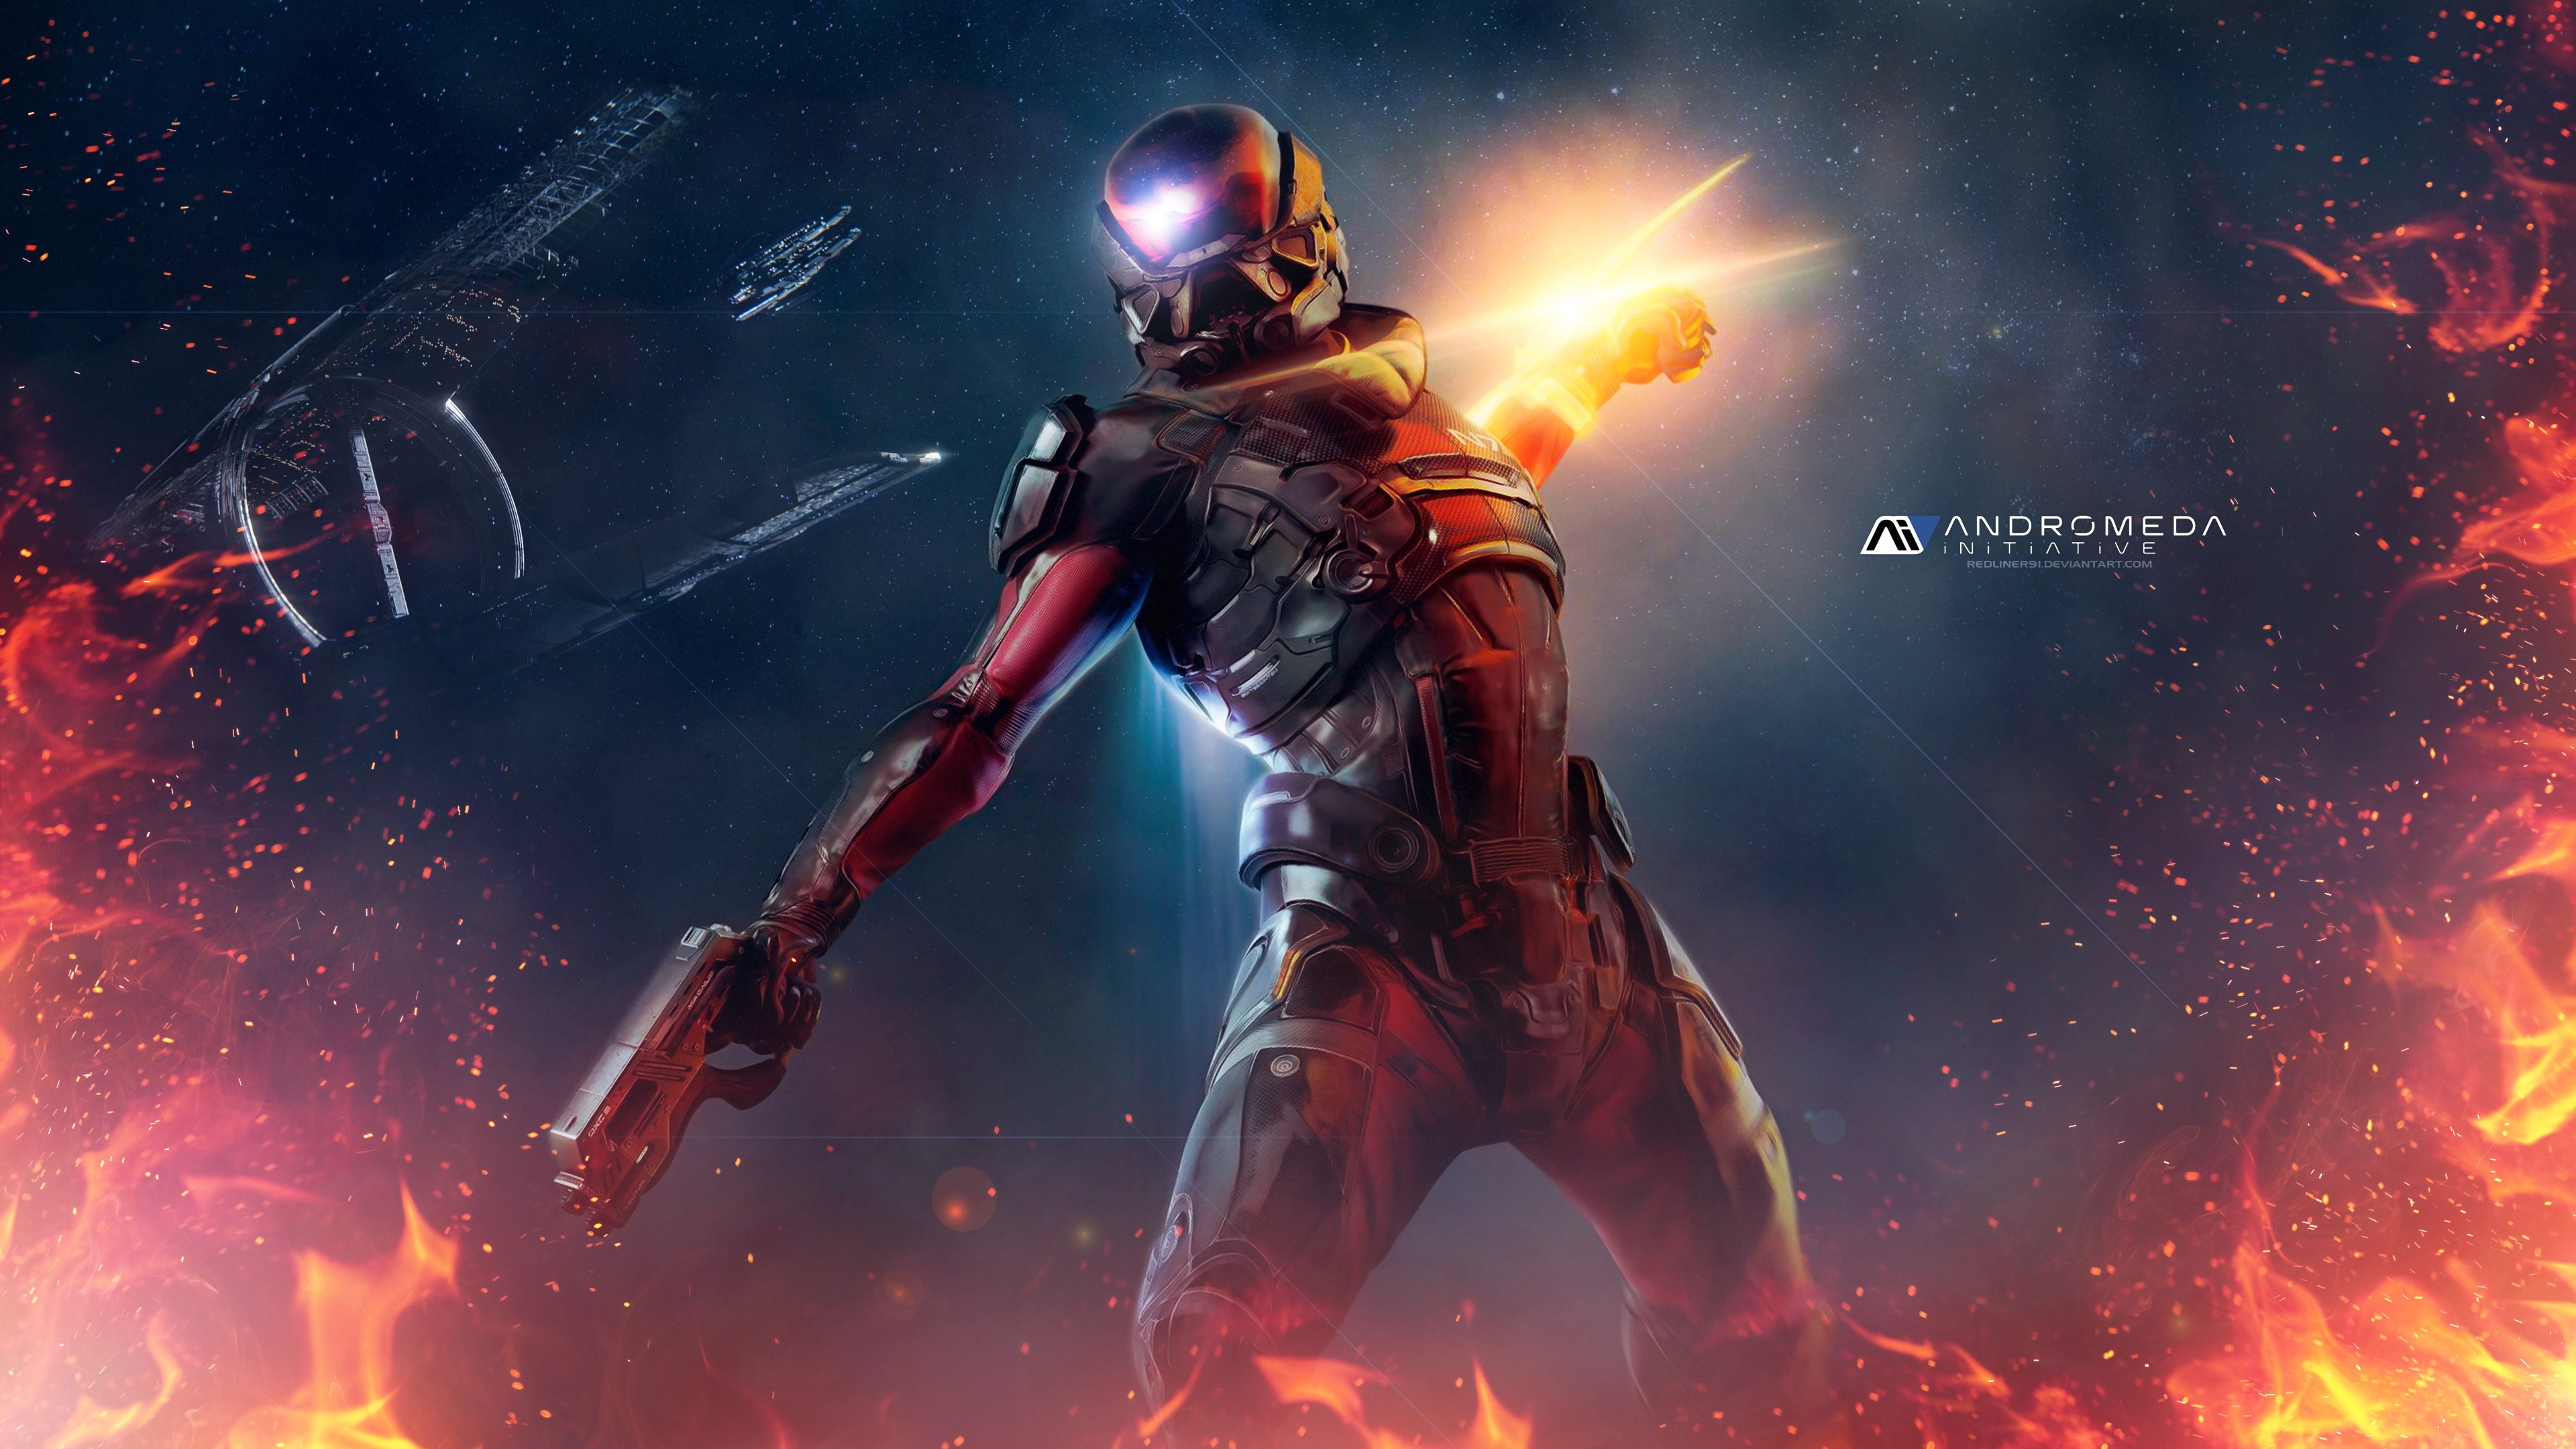 Hd Mass Effect Wallpapers 1080p 76 Pictures